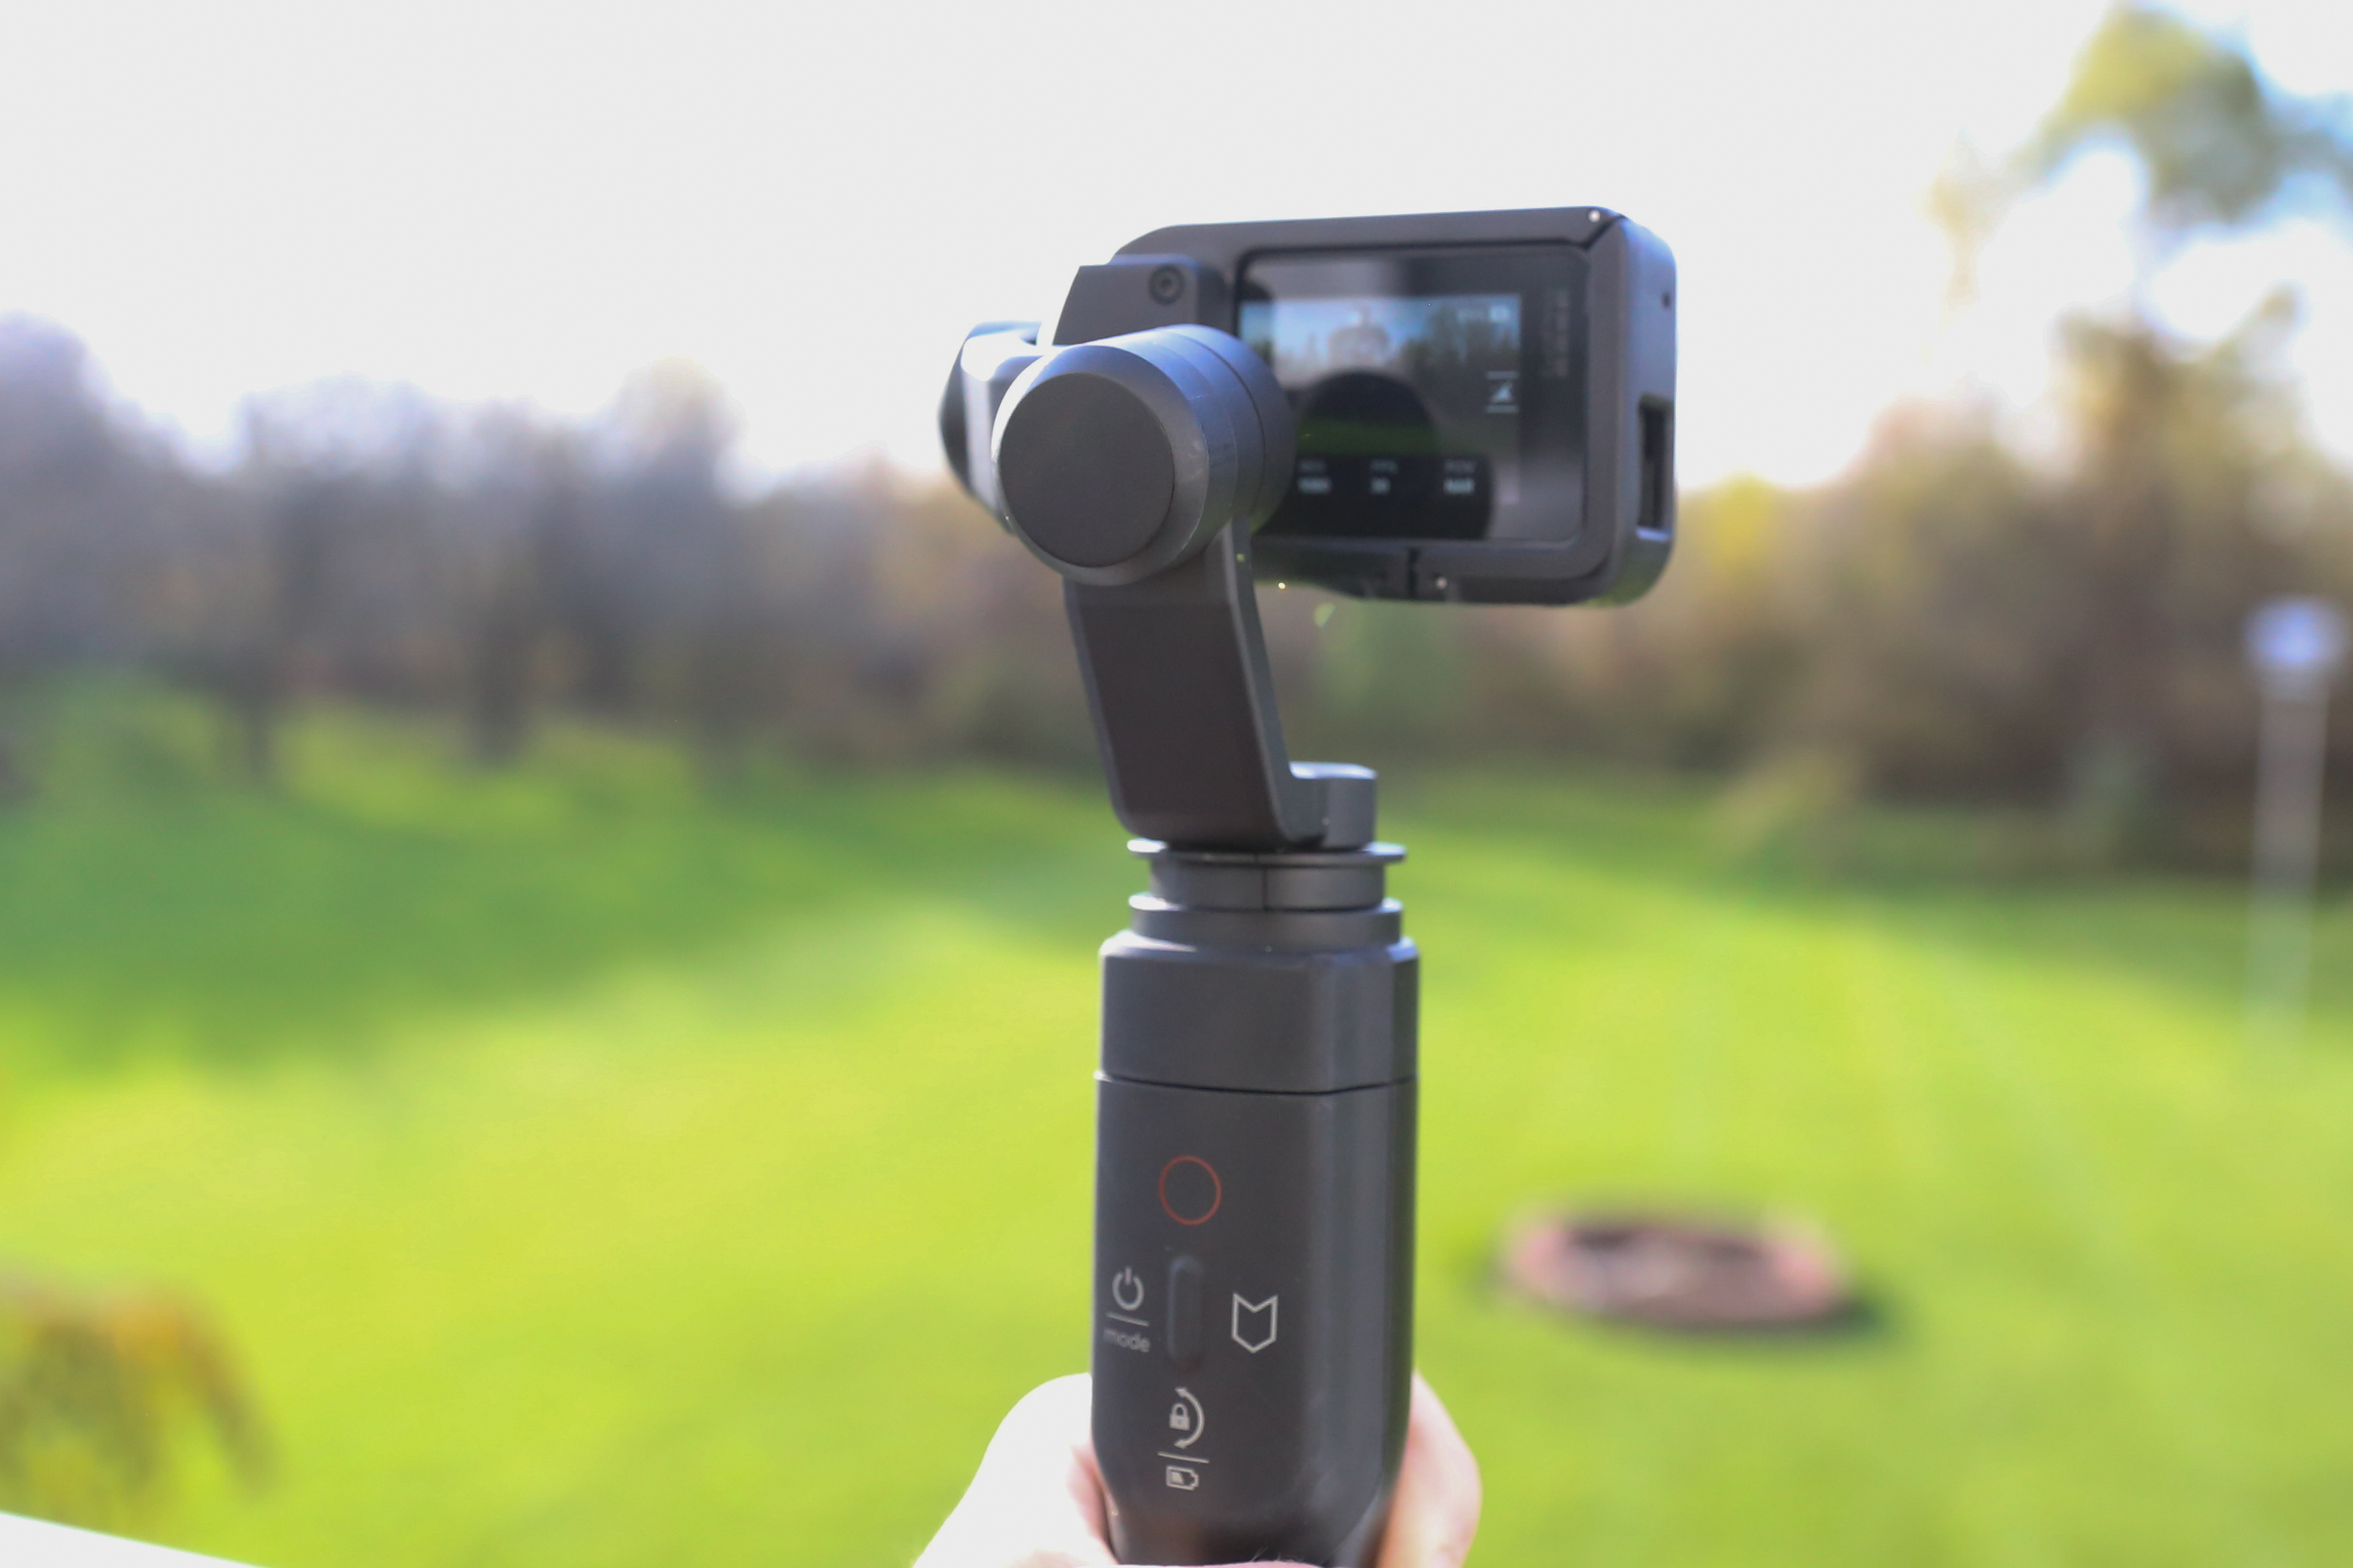 d007ceb4725e09 GoPro releases the $299 Karma Grip handheld stabilizer | TechCrunch